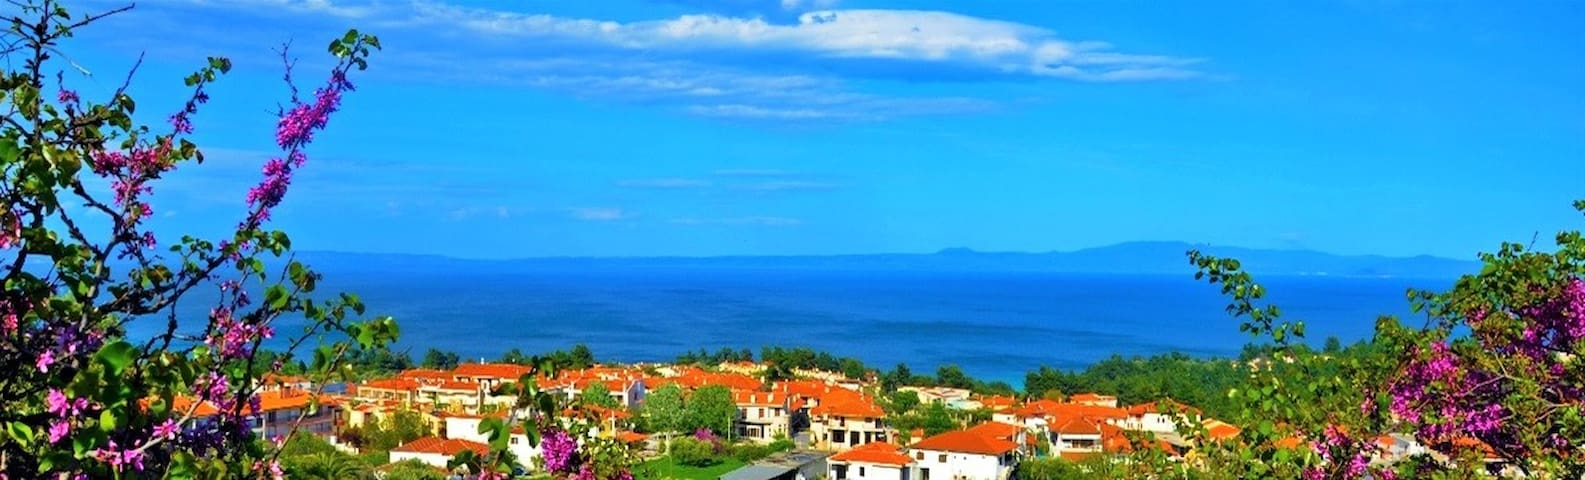 2 Bedroom Apartment with Garden and Sea View - Kriopigi - Appartement